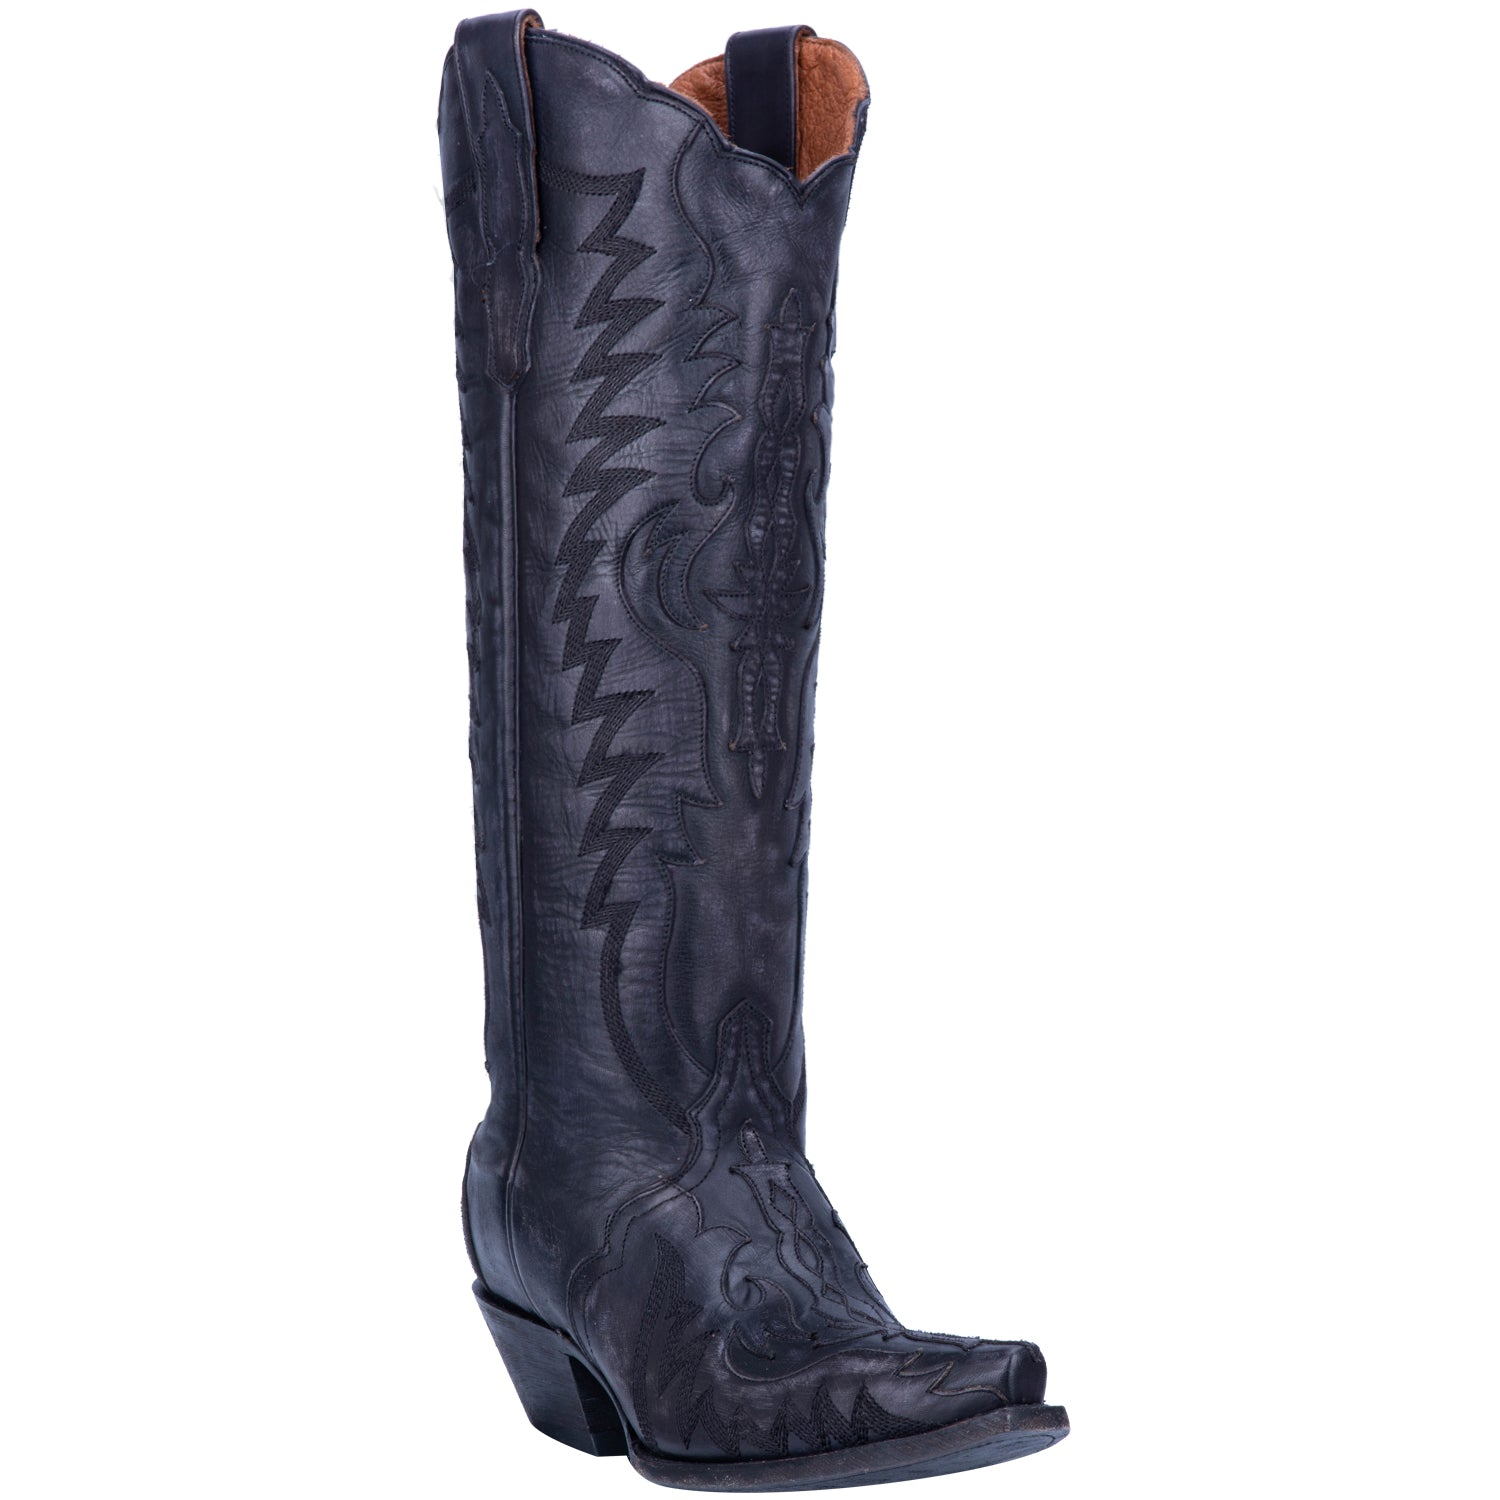 HALLIE LEATHER BOOT 5391877734442